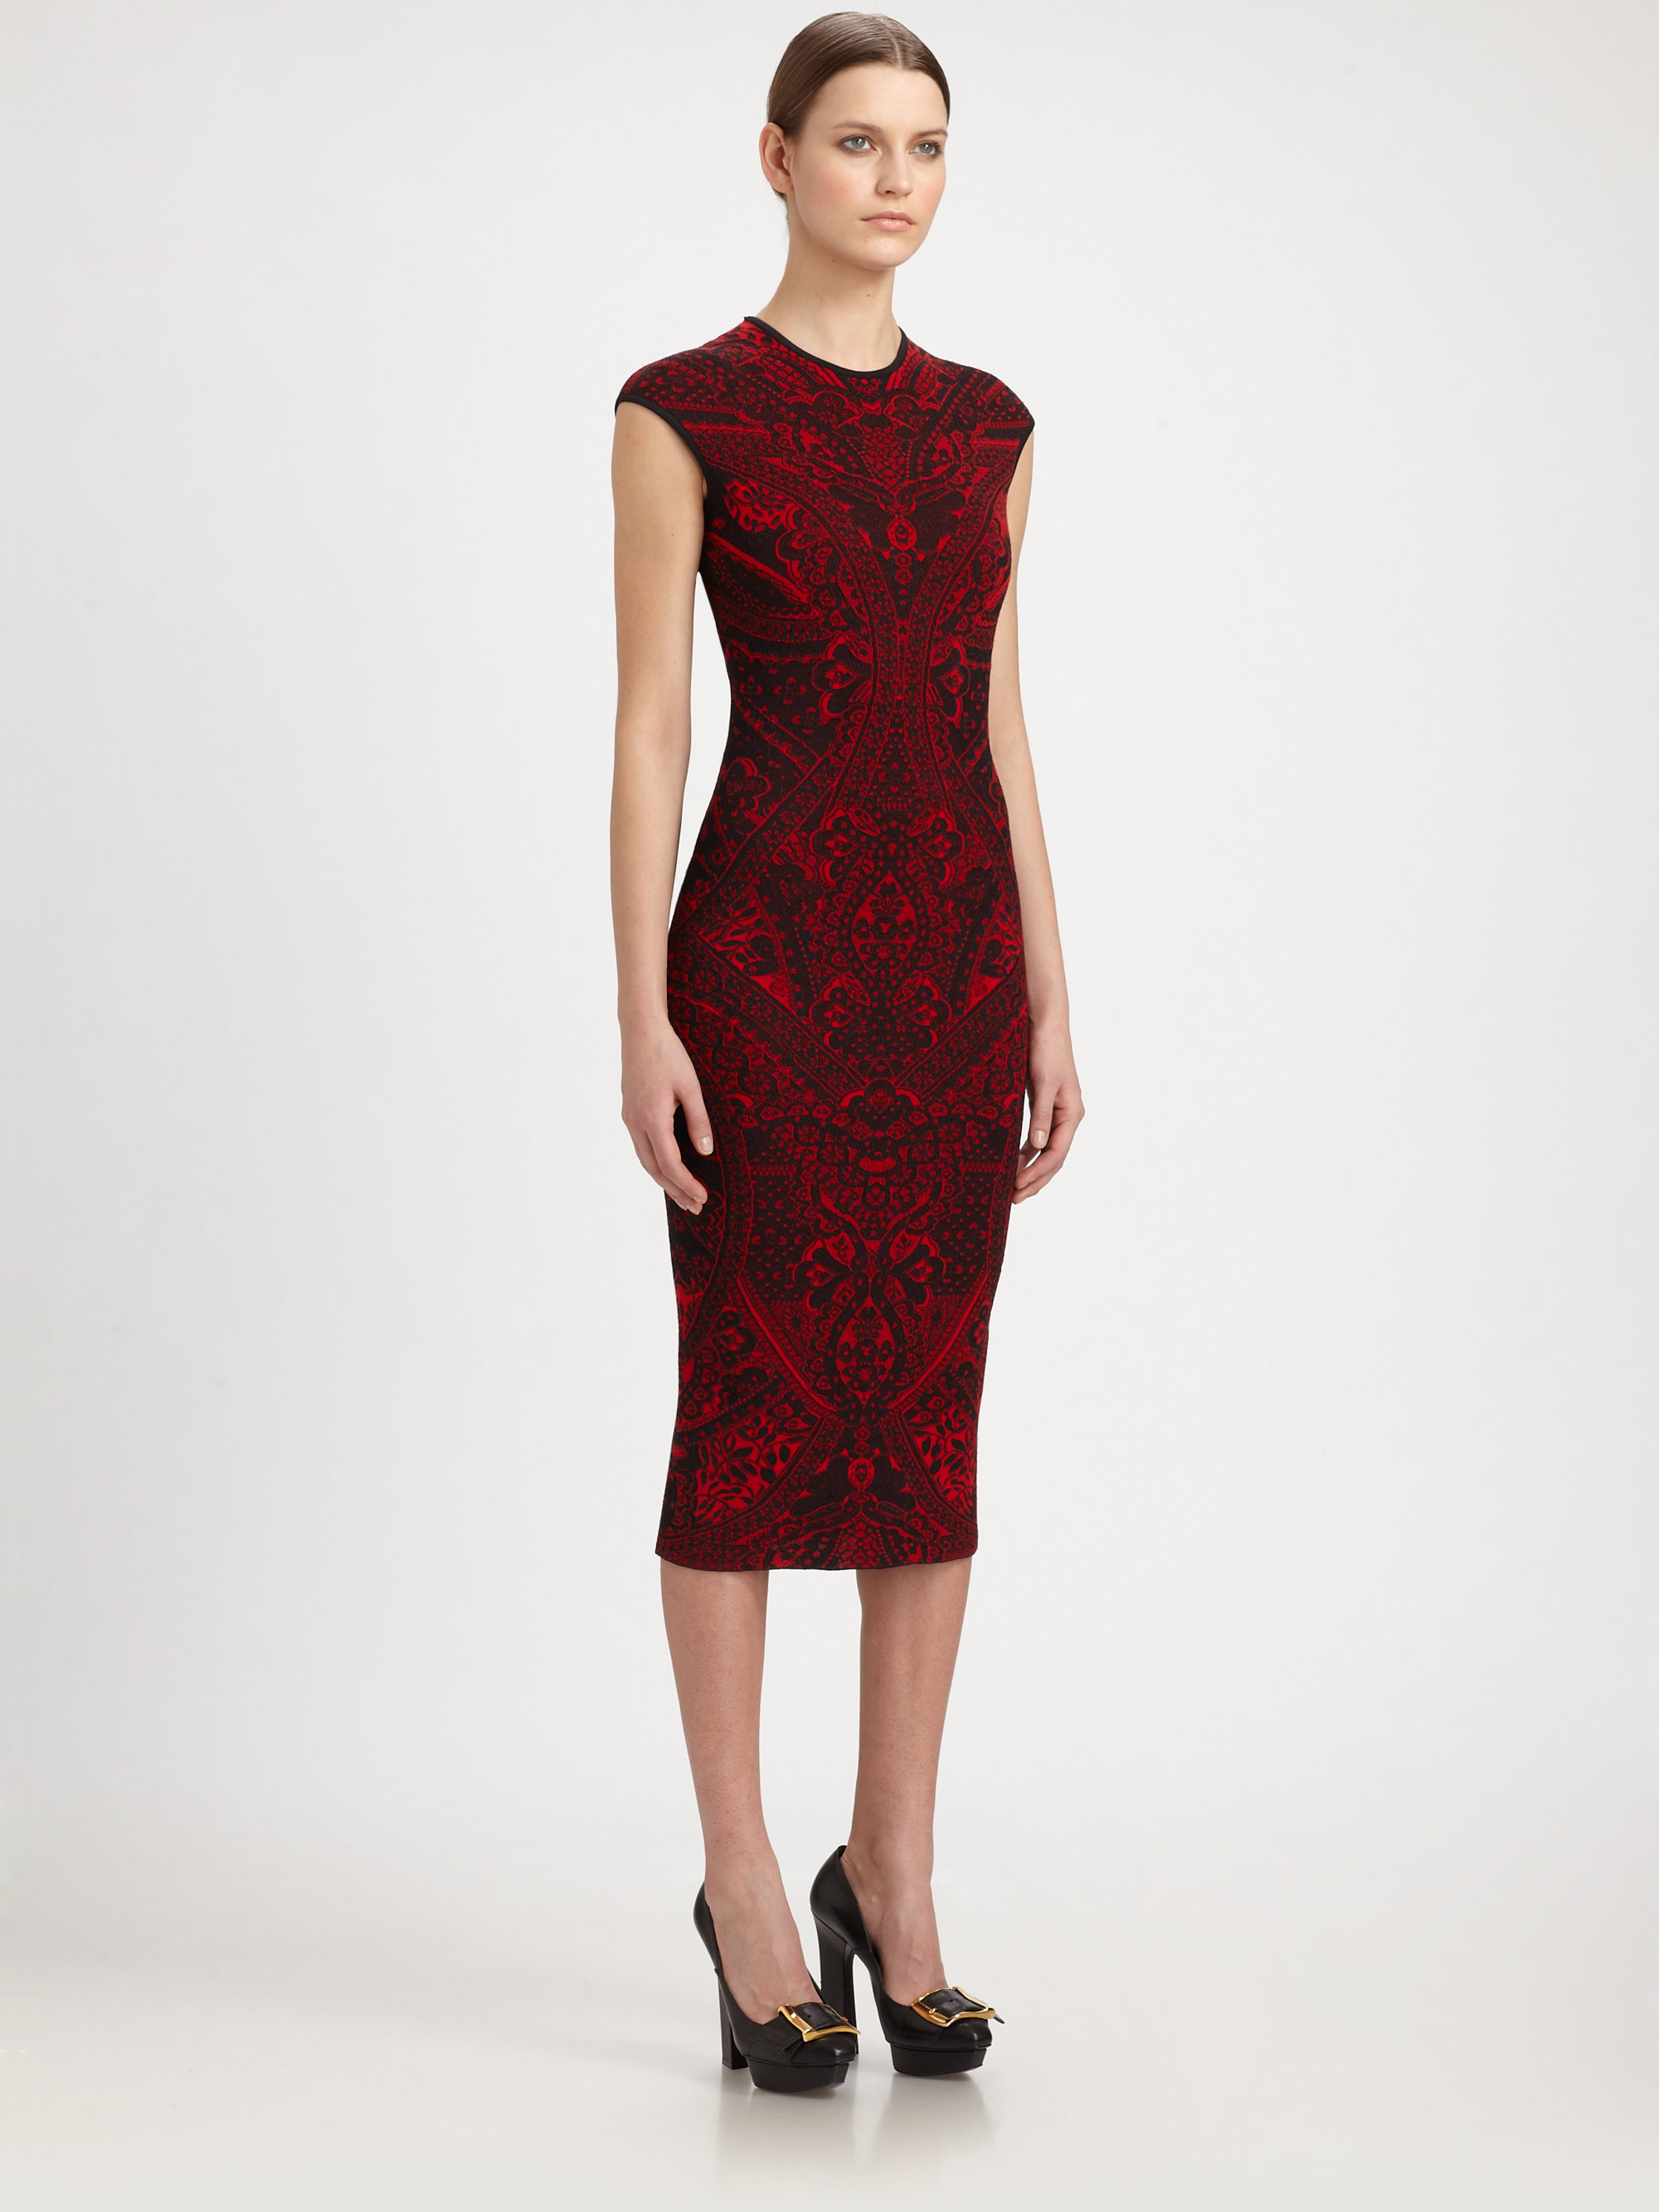 Lyst Alexander Mcqueen Lace Jacquard Knit Dress In Red